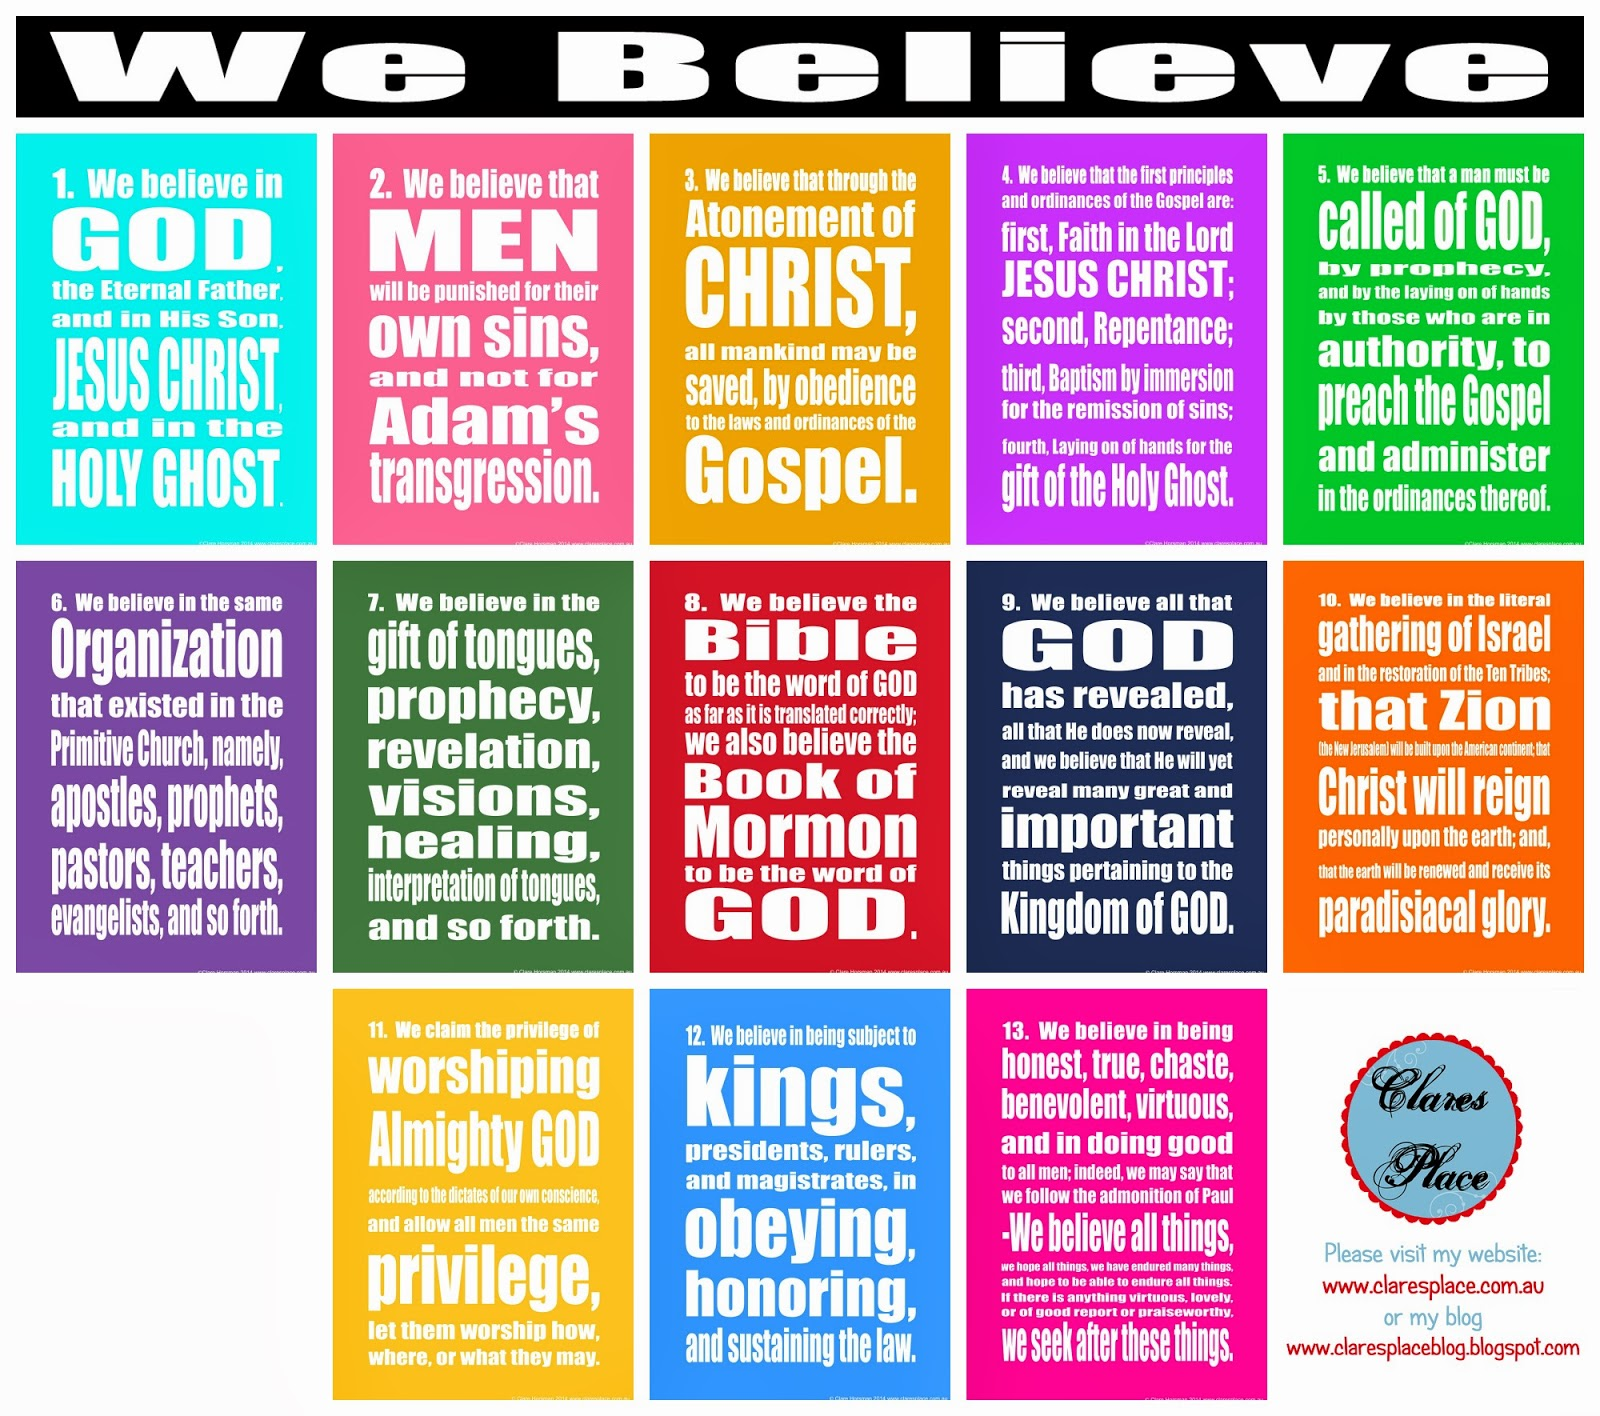 Satisfactory image with regard to 13 articles of faith printable